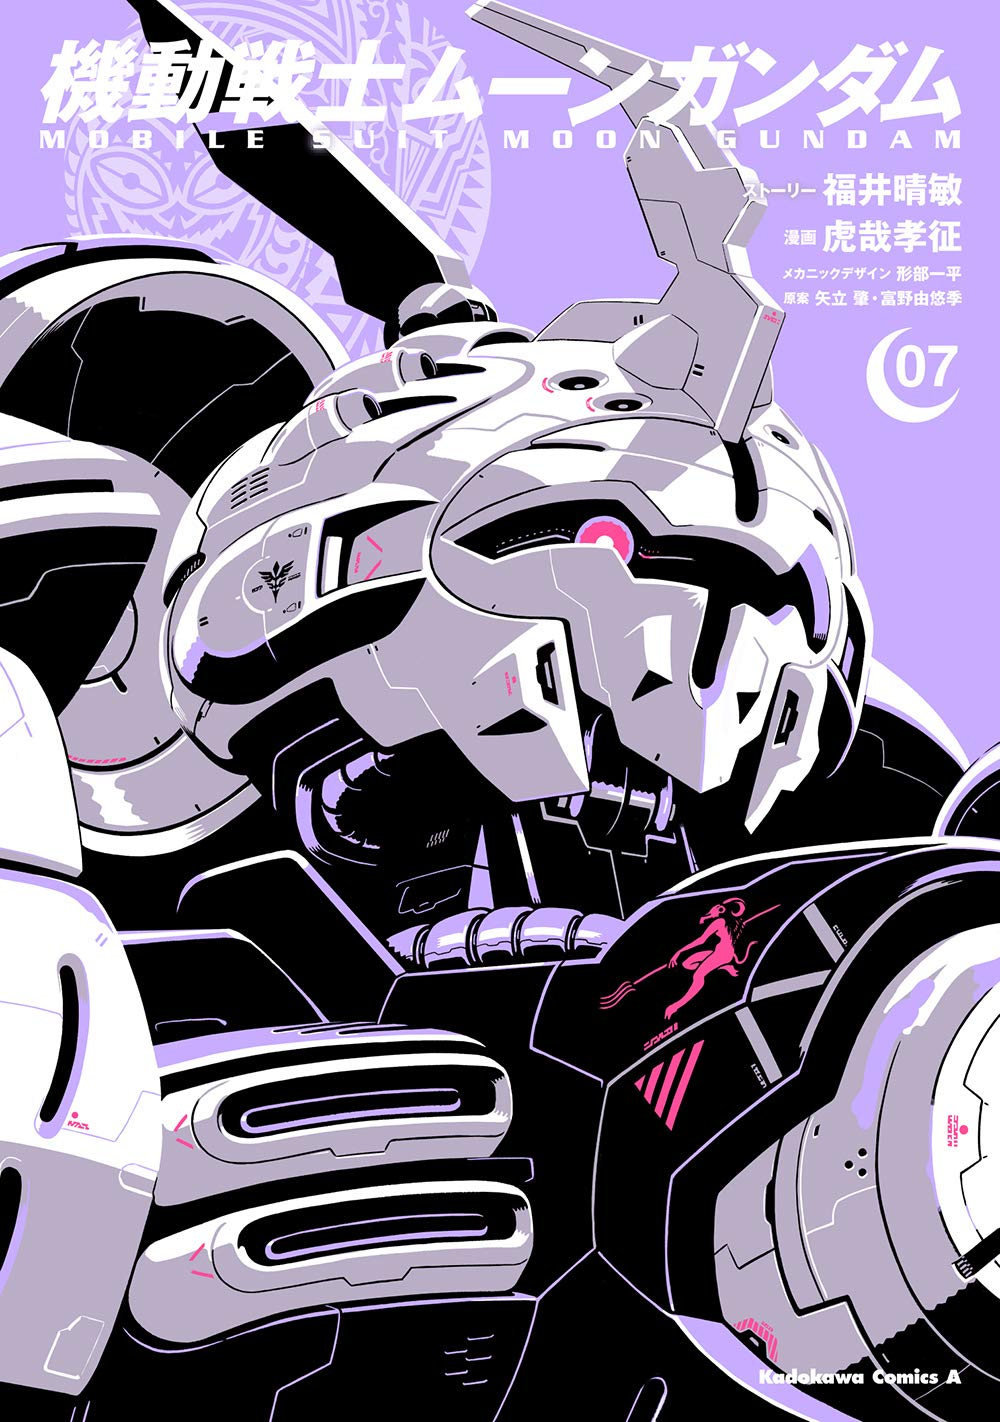 artist_name copyright_name cover cover_page dag_doll gundam gyoubu_ippei highres horns looking_at_viewer manga_cover mecha mobile_suit mobile_suit_moon_gundam no_humans official_art one-eyed pink_eyes purple_background single_horn solo upper_body zeon